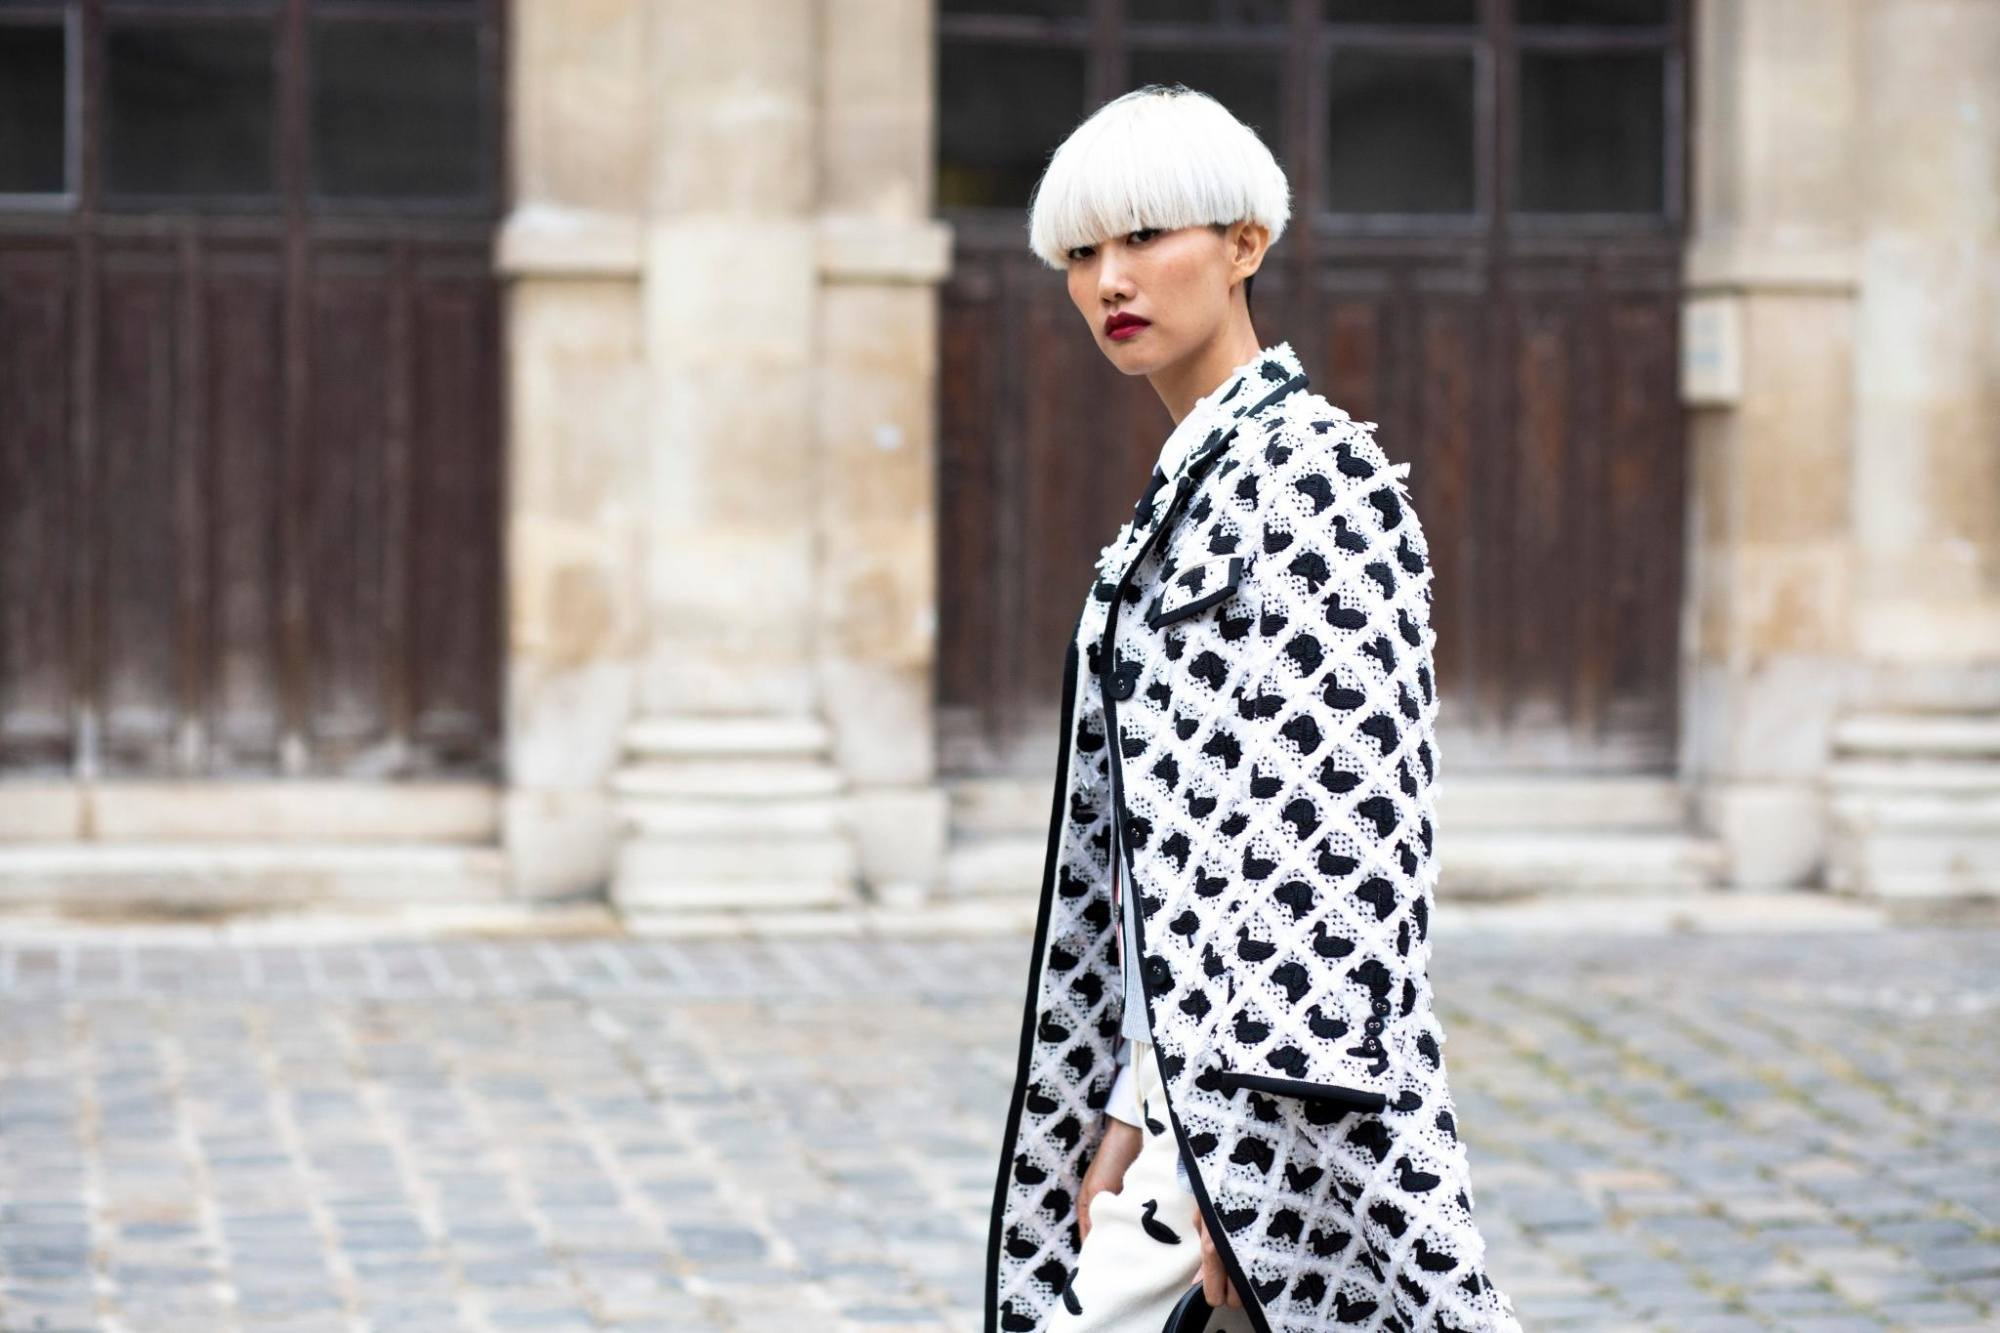 Woman with blonde bowl cut short hair wearing a checkered coat outdoors